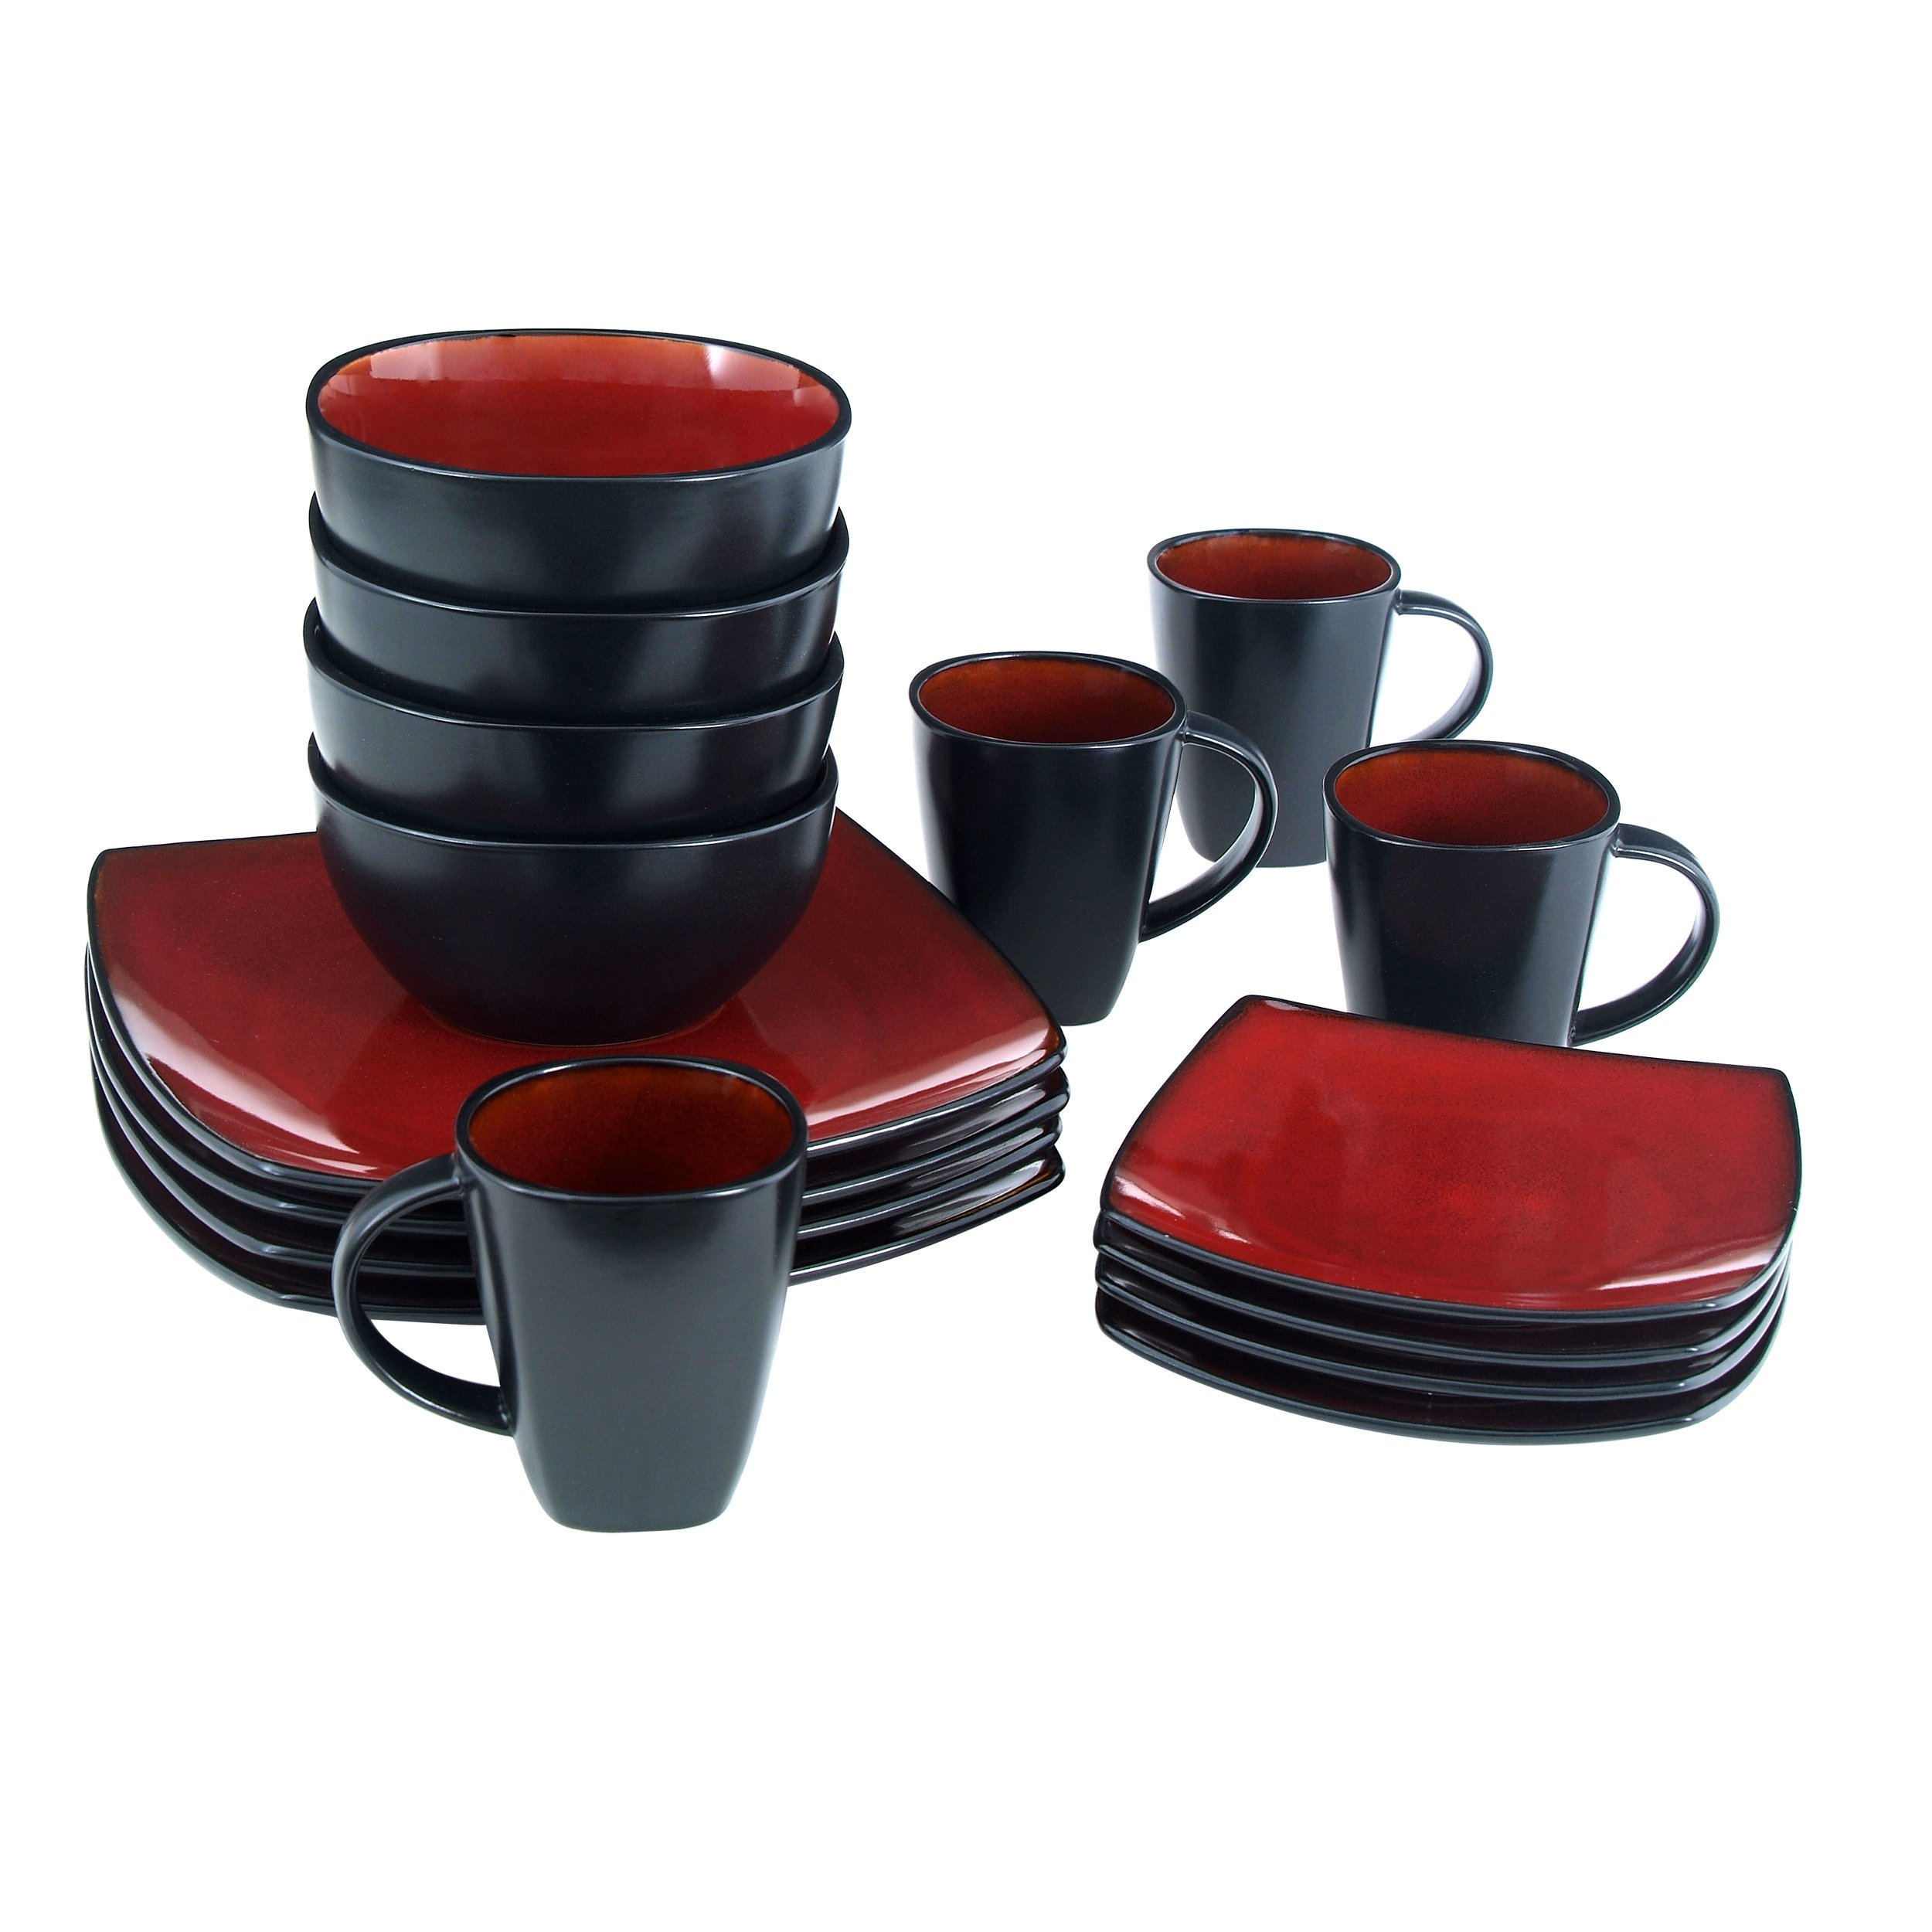 Gibson Elite 61220.16RM Soho Lounge 16-Piece Square Reactive Glaze Dinnerware Set, Red by Gibson (Image #2)